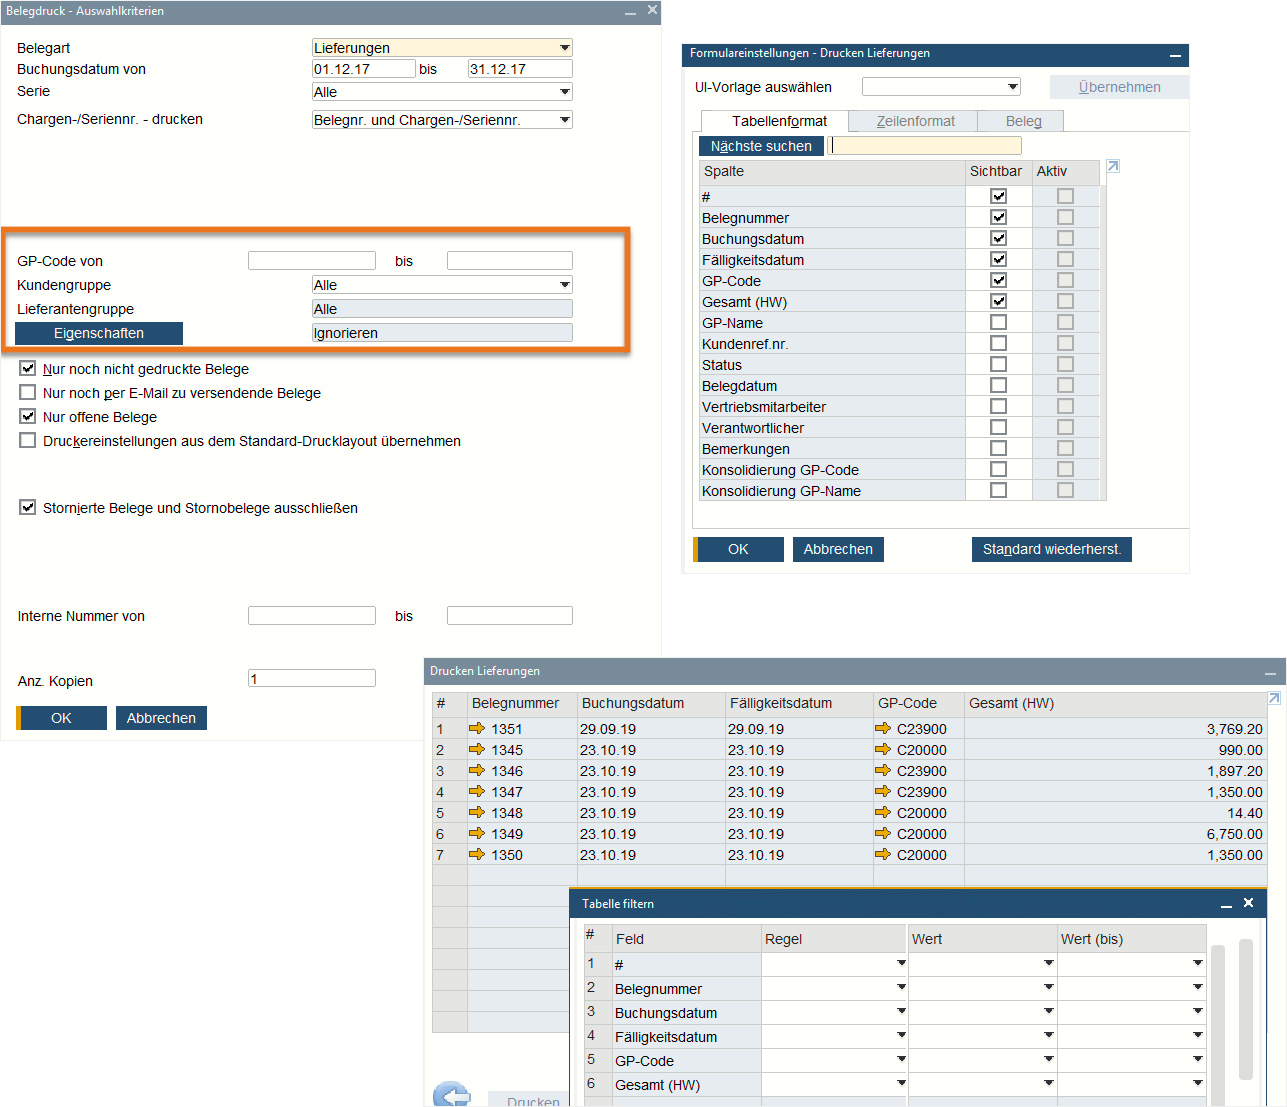 SAP-Business-One-Version-10.0-Administration-Erweiterungen-im-Formulardruck